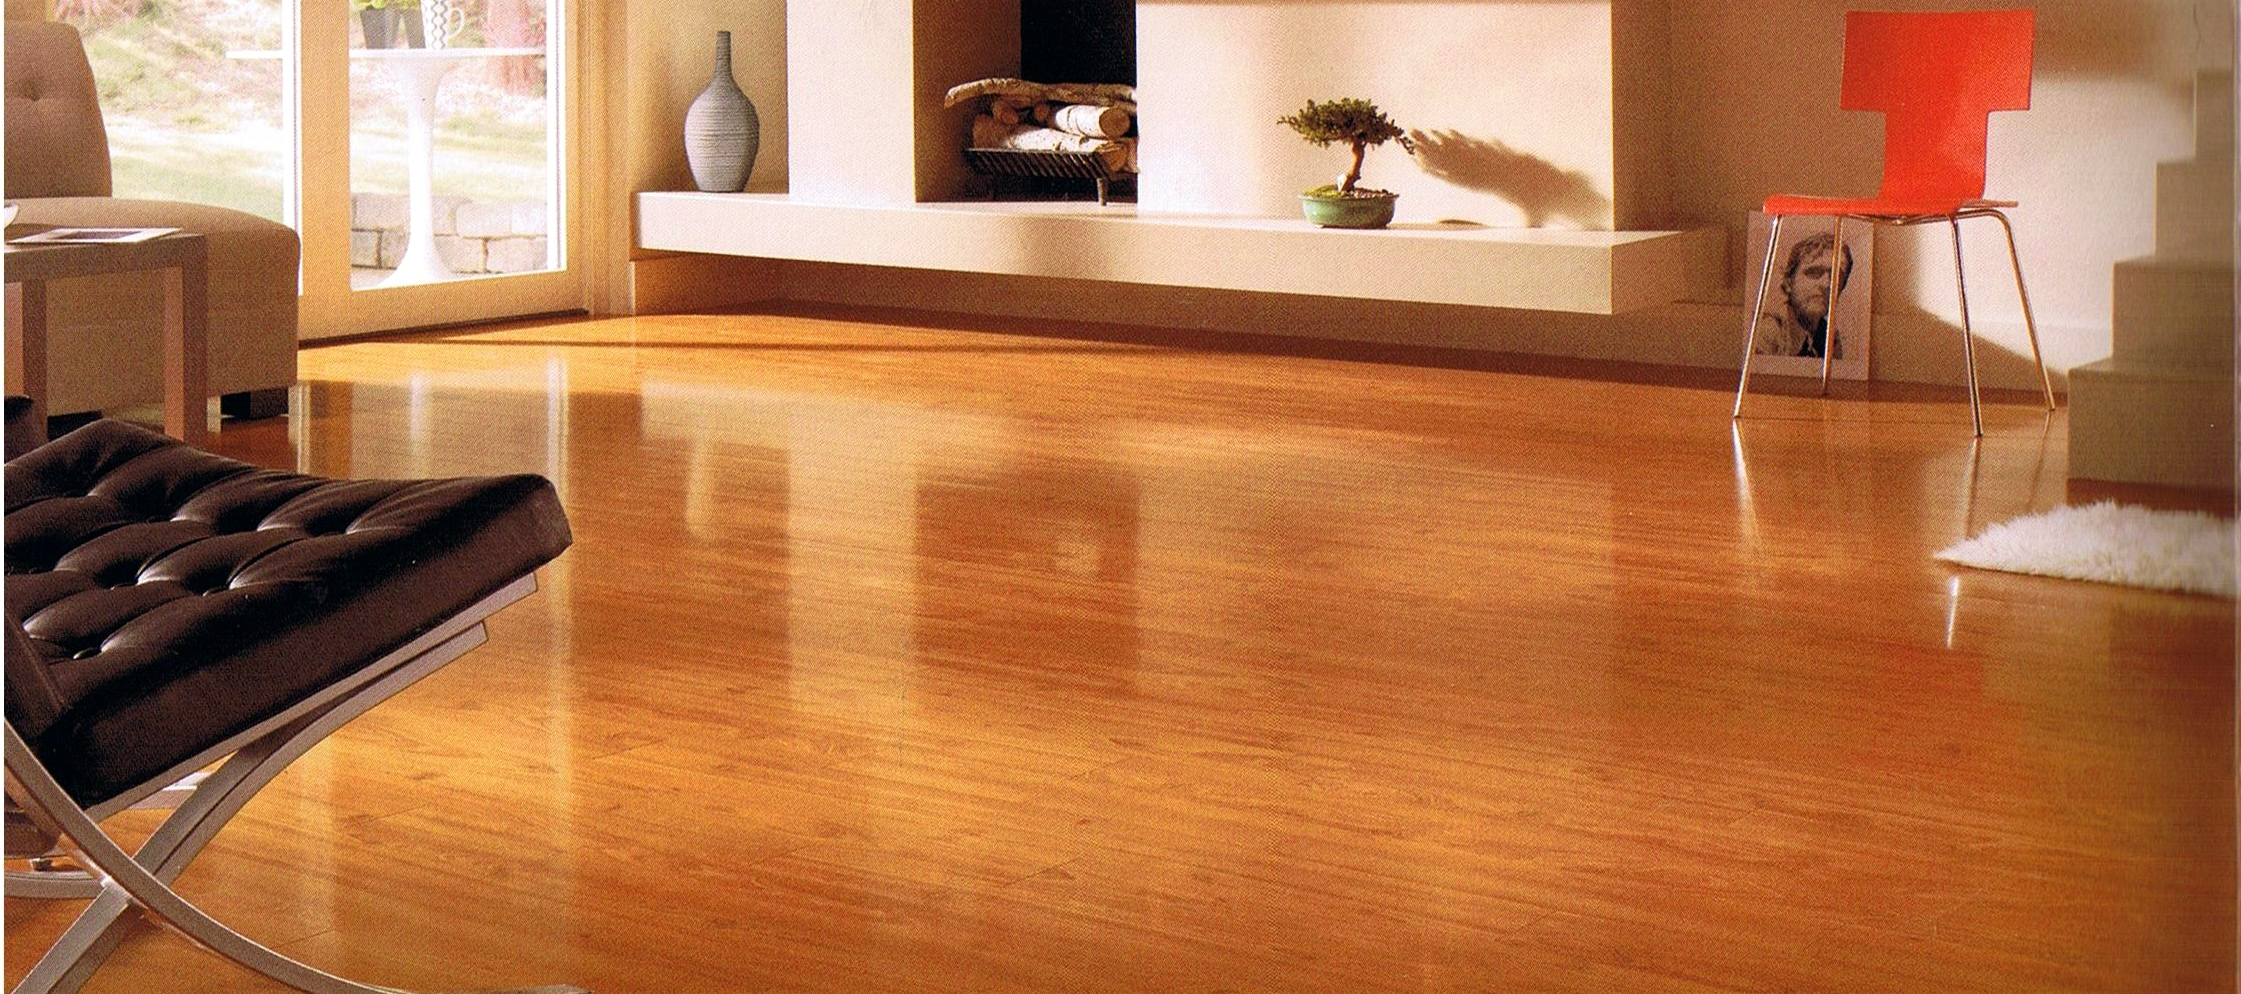 laminate flooring vancouver bc bc floors 2 year warranty On laminate flooring vancouver